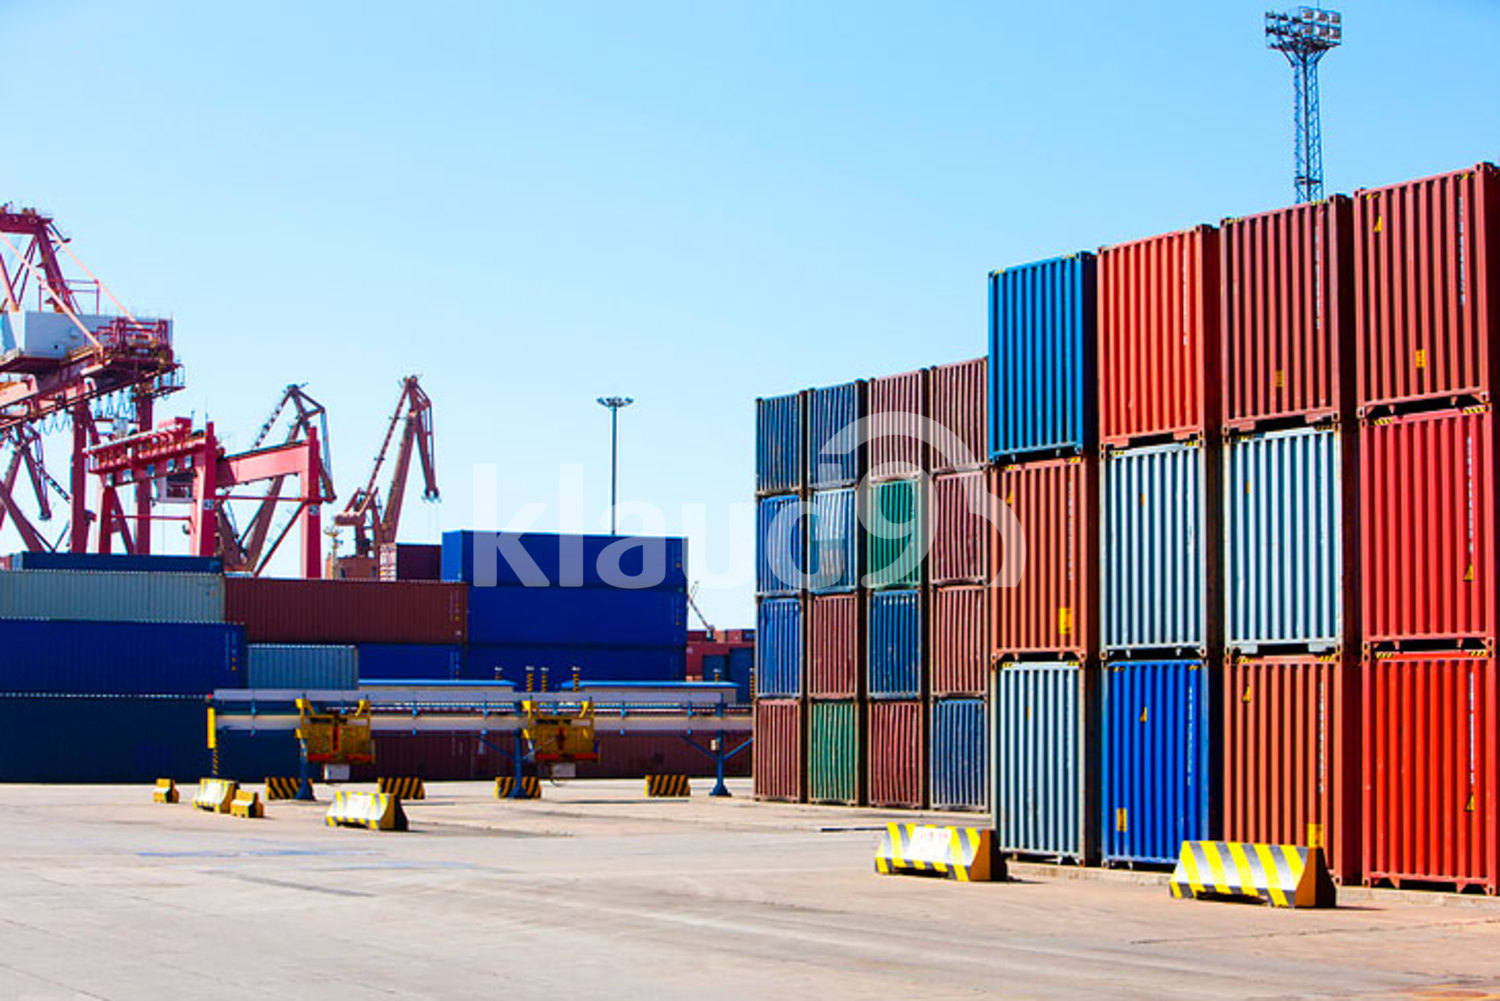 Cargo containers in shipping dock